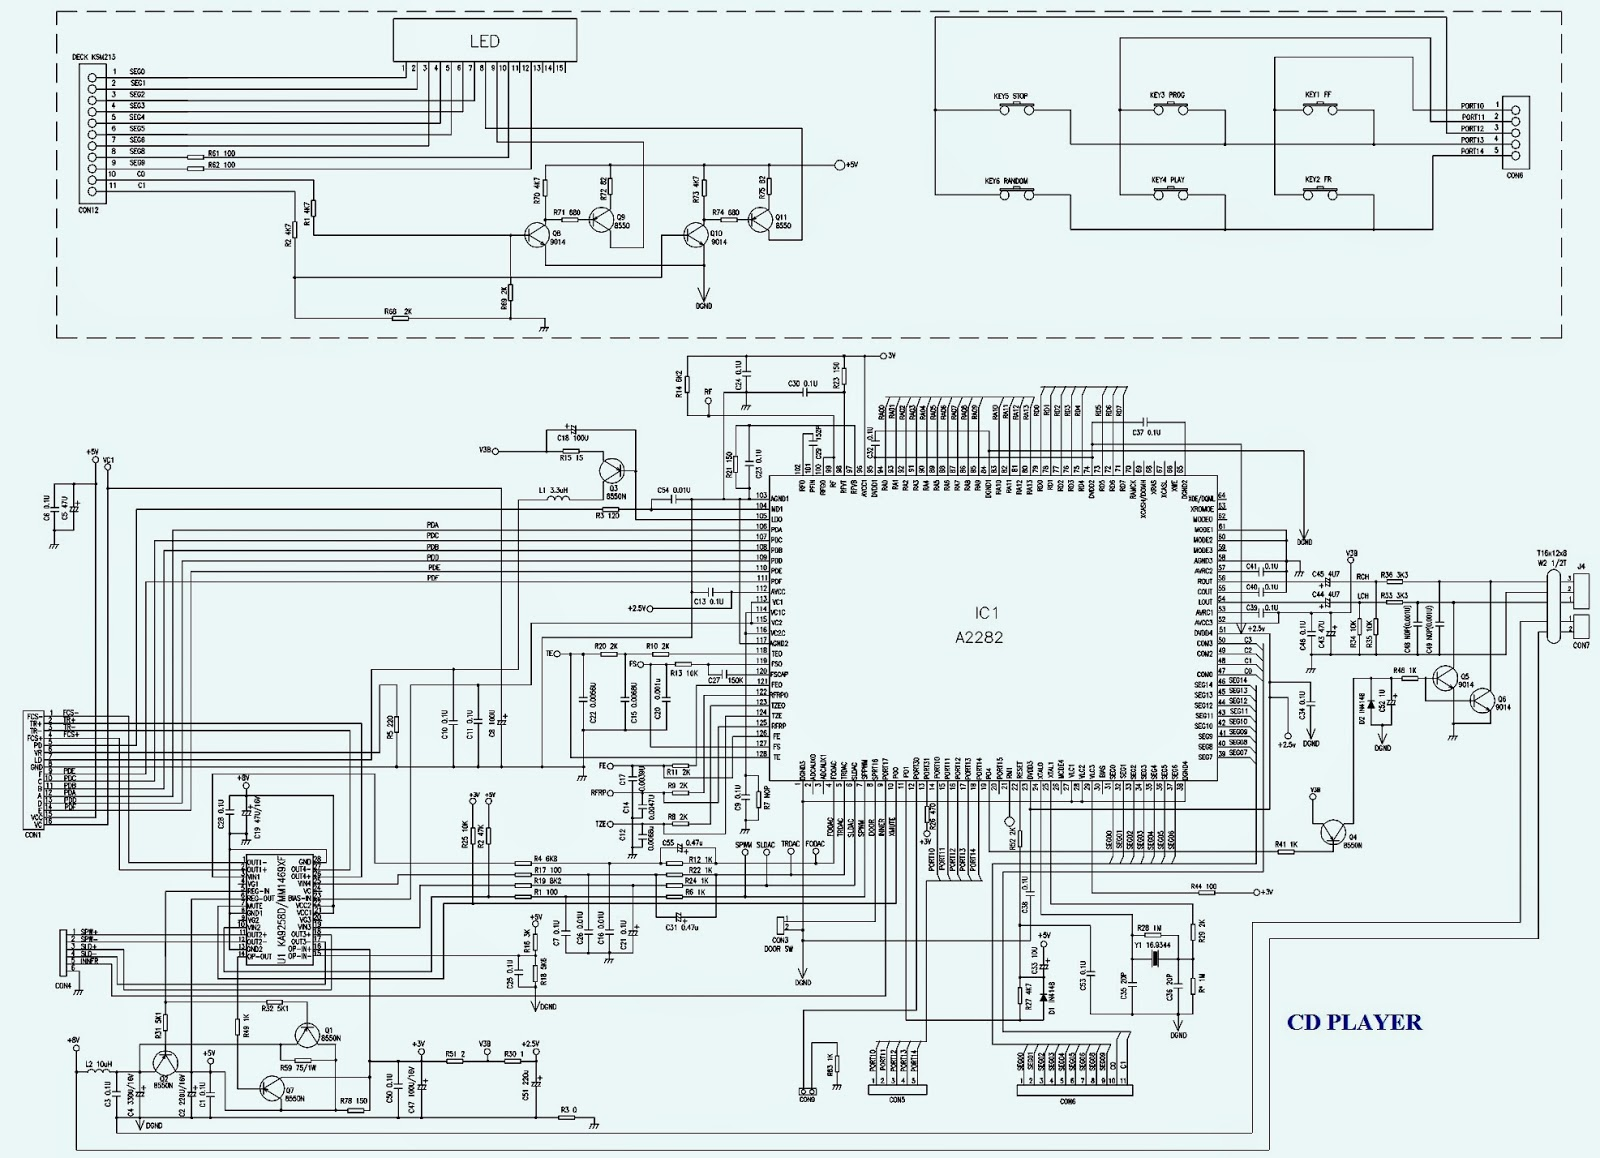 Compact Disc Player Schematic - Application Wiring Diagram •